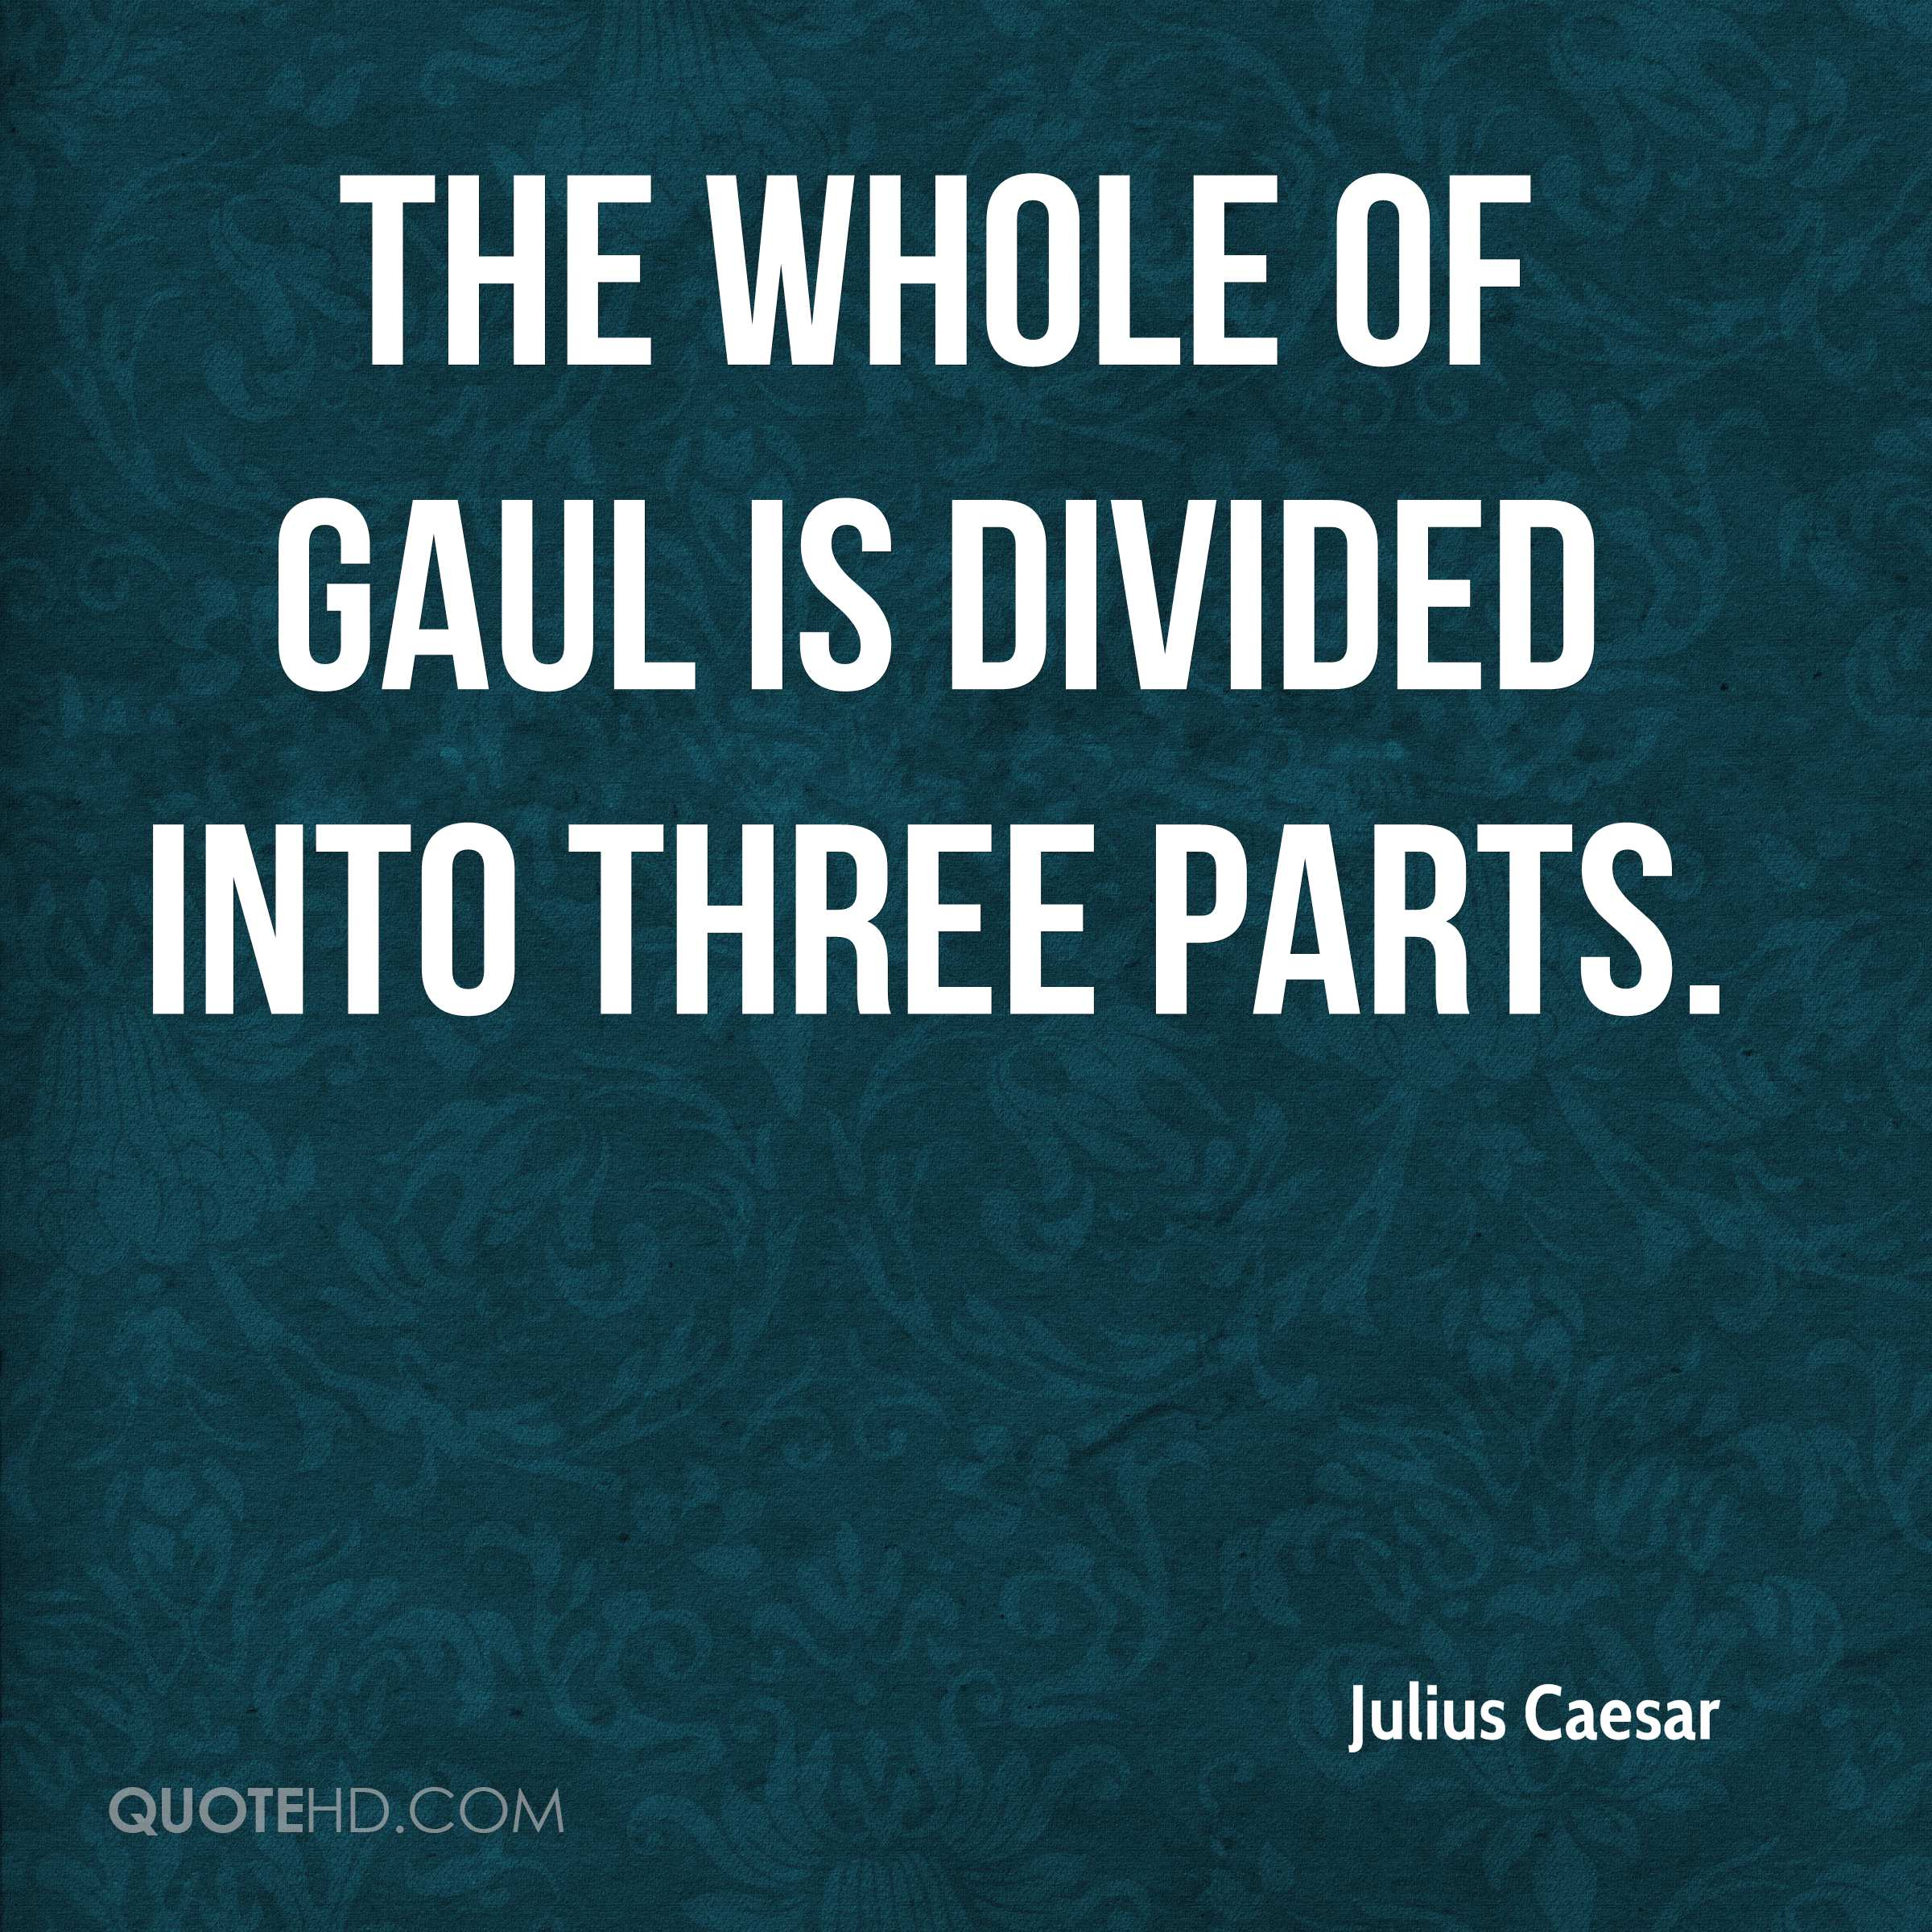 The whole of Gaul is divided into three parts.